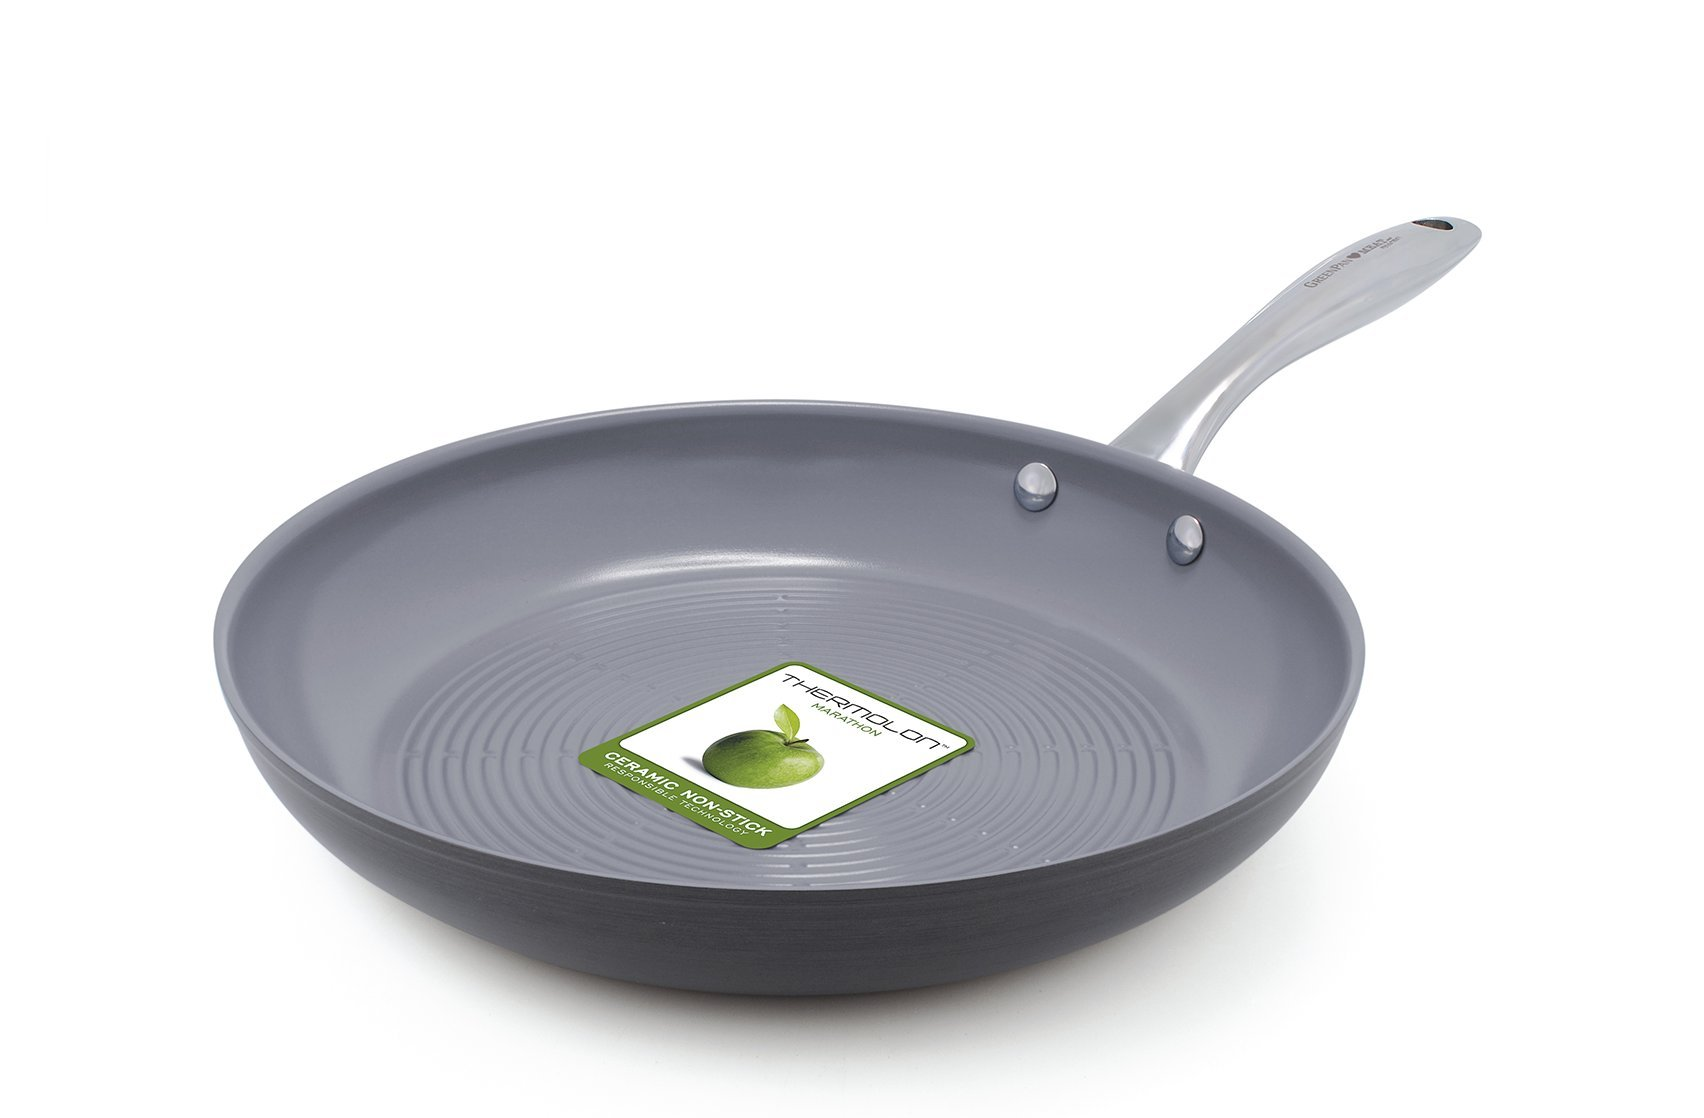 GreenPan Lima 3D I Love Meat & Poultry 11 Inch Hard Anodized Non-Stick Dishwasher Safe Ceramic Fry Pan